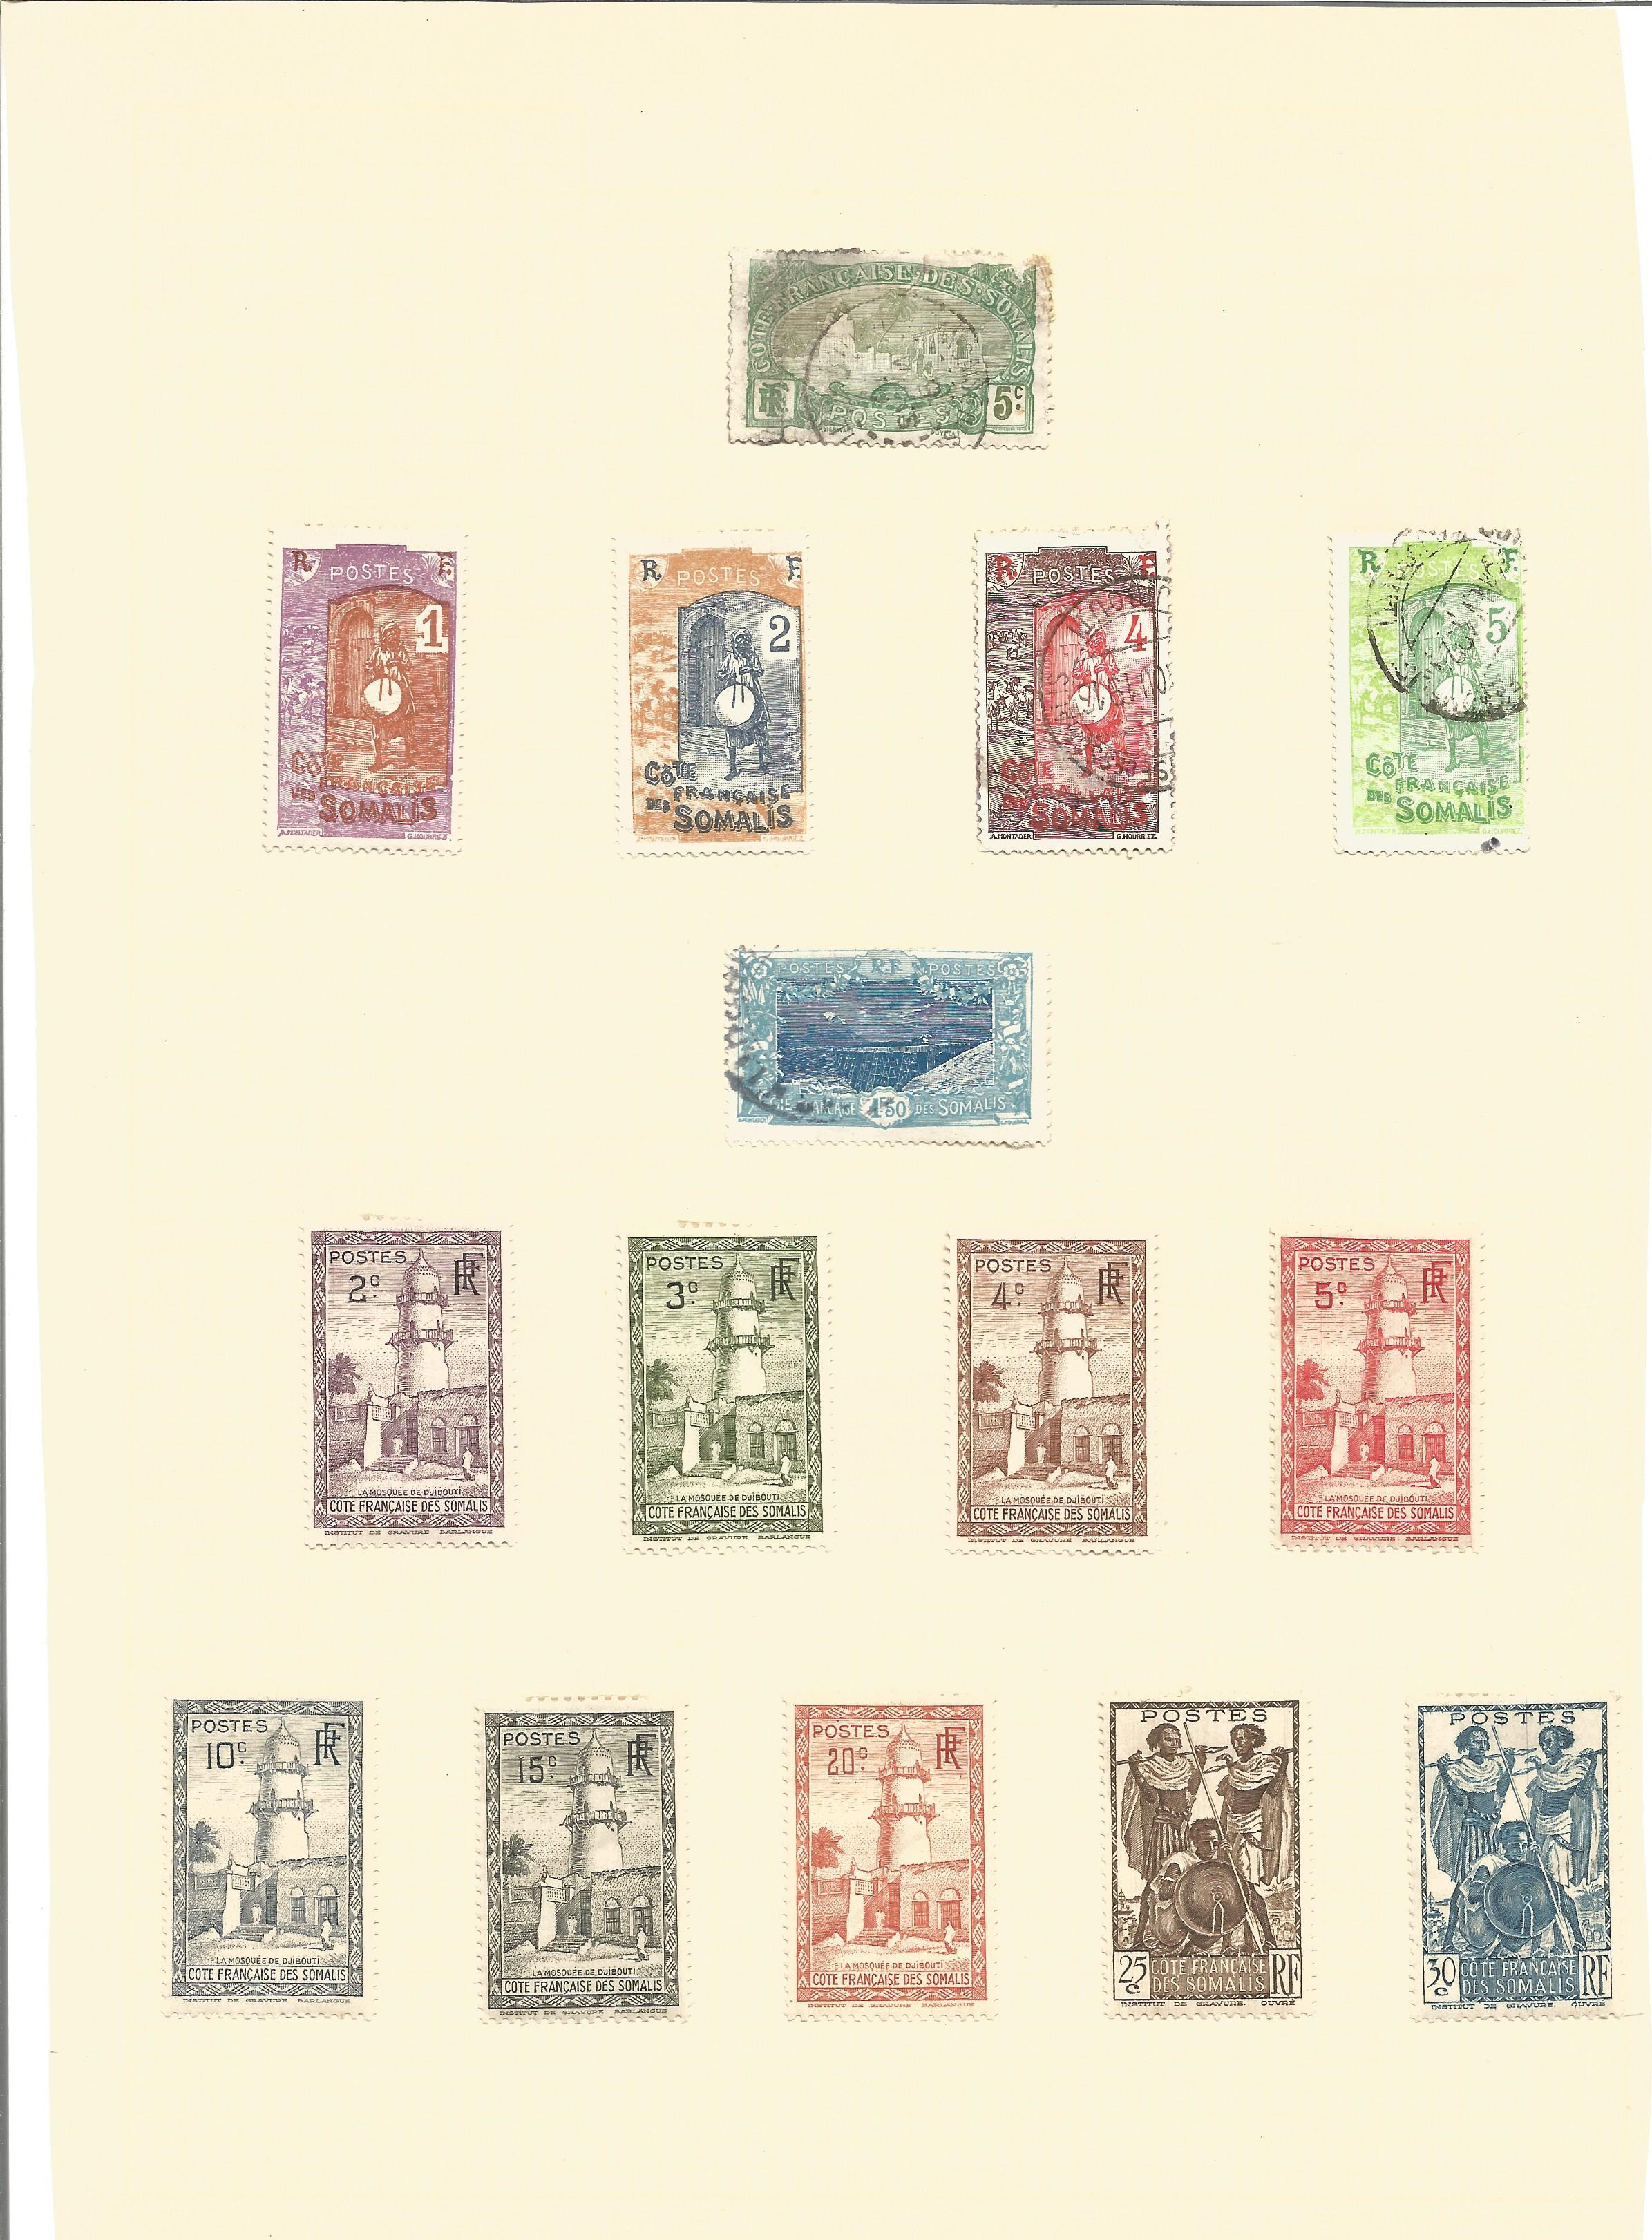 Assorted stamp collection on 7 loose album pages. Includes stamps from Somalia occidental,